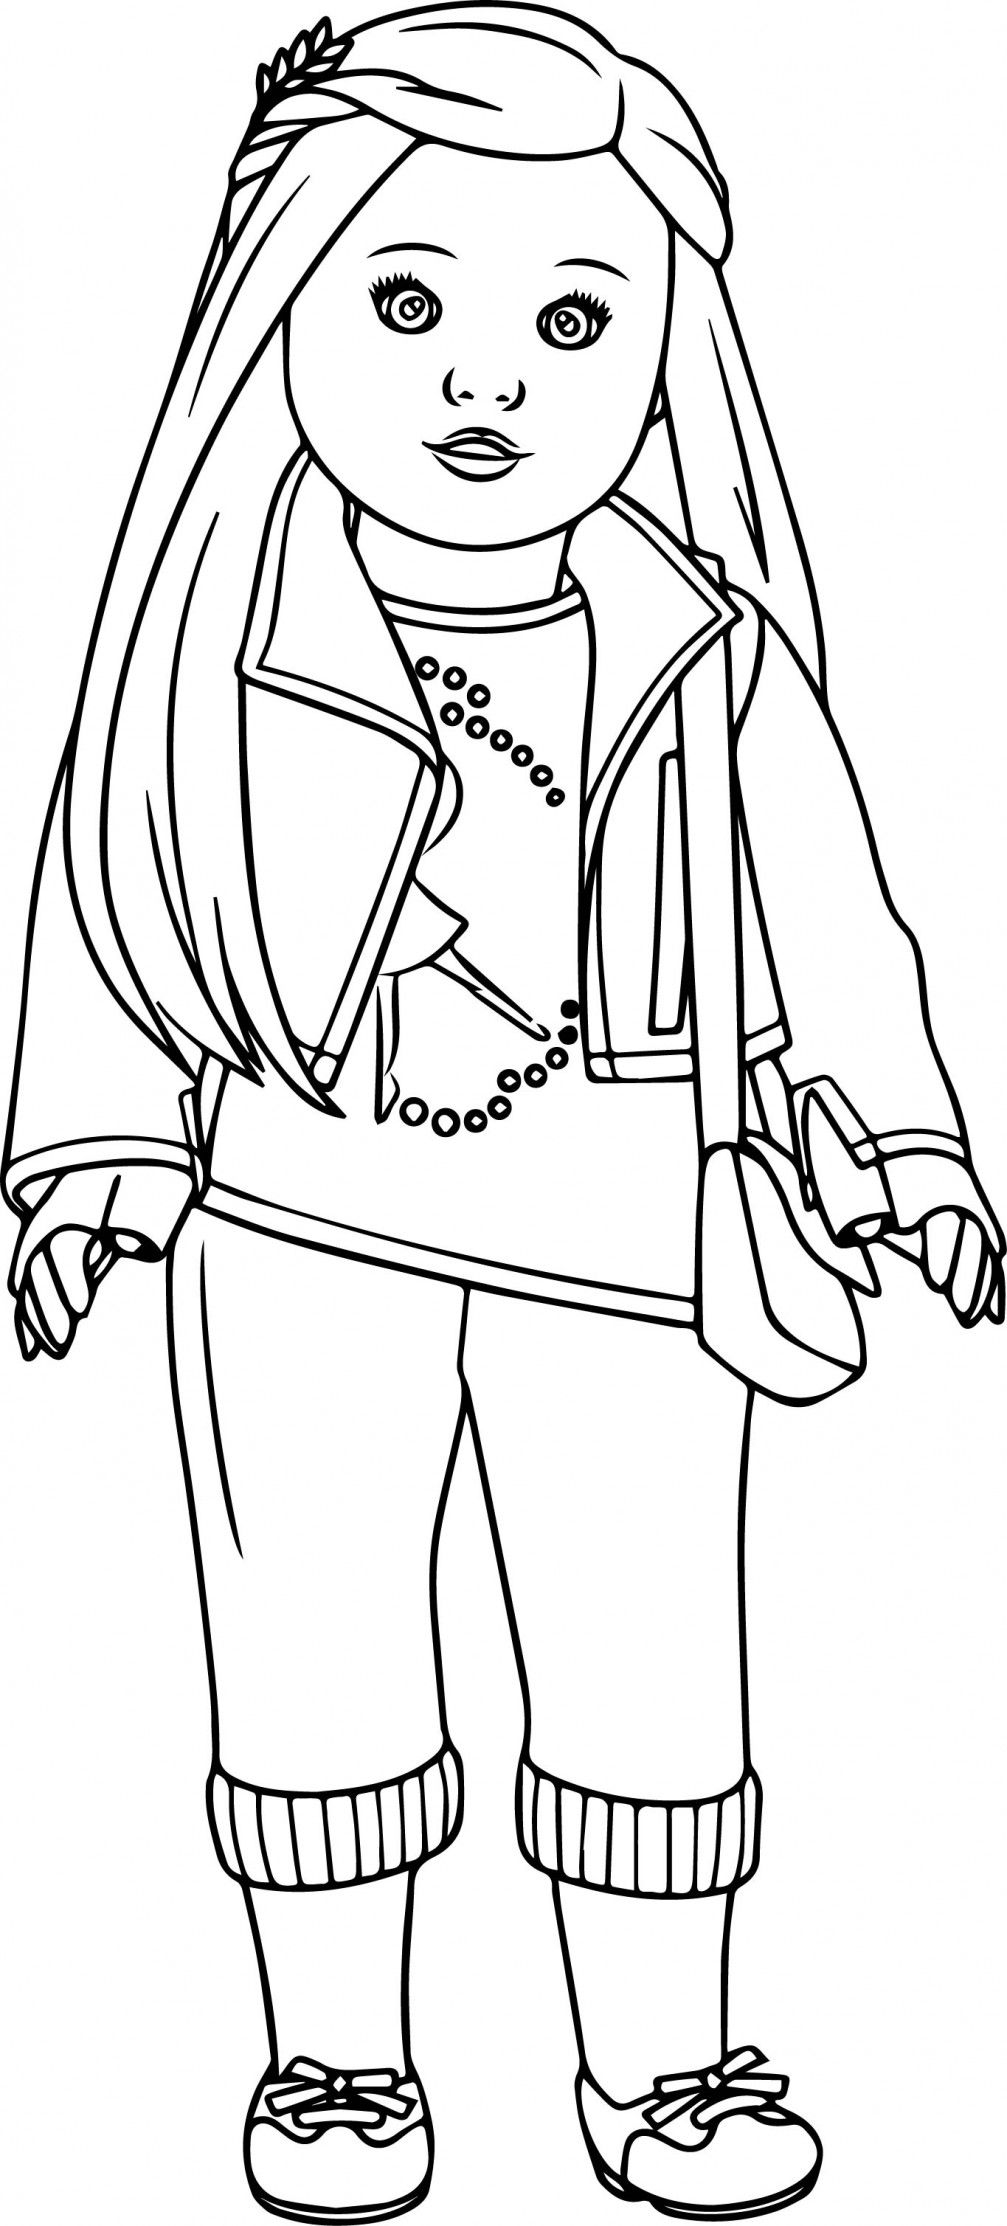 coloring printouts for girls american girl coloring pages best coloring pages for kids coloring girls for printouts